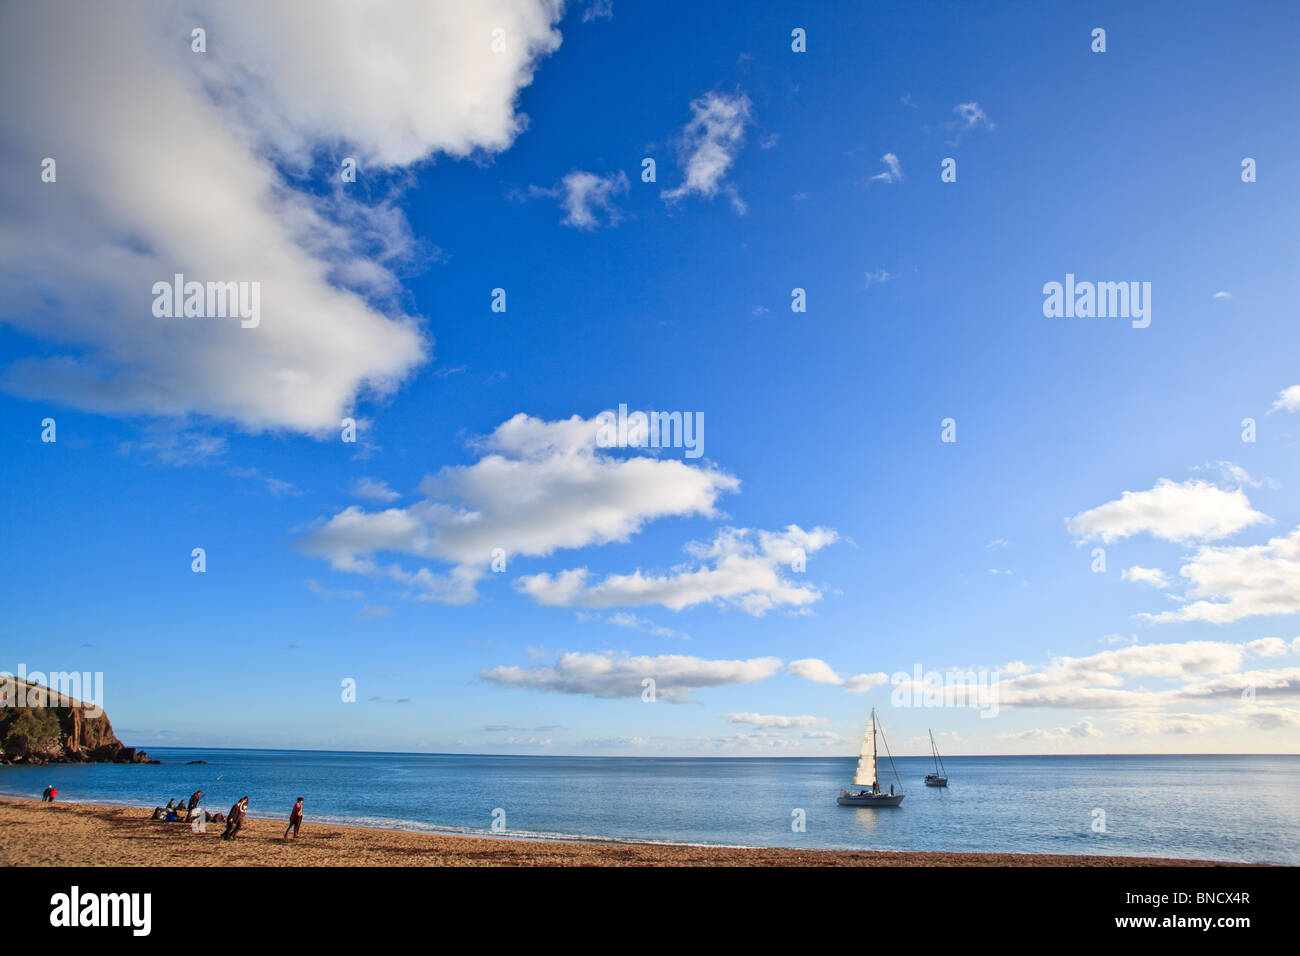 Blackpool Sands Devon beach scene with small yacht on sea with blue sky and white clouds - Stock Image